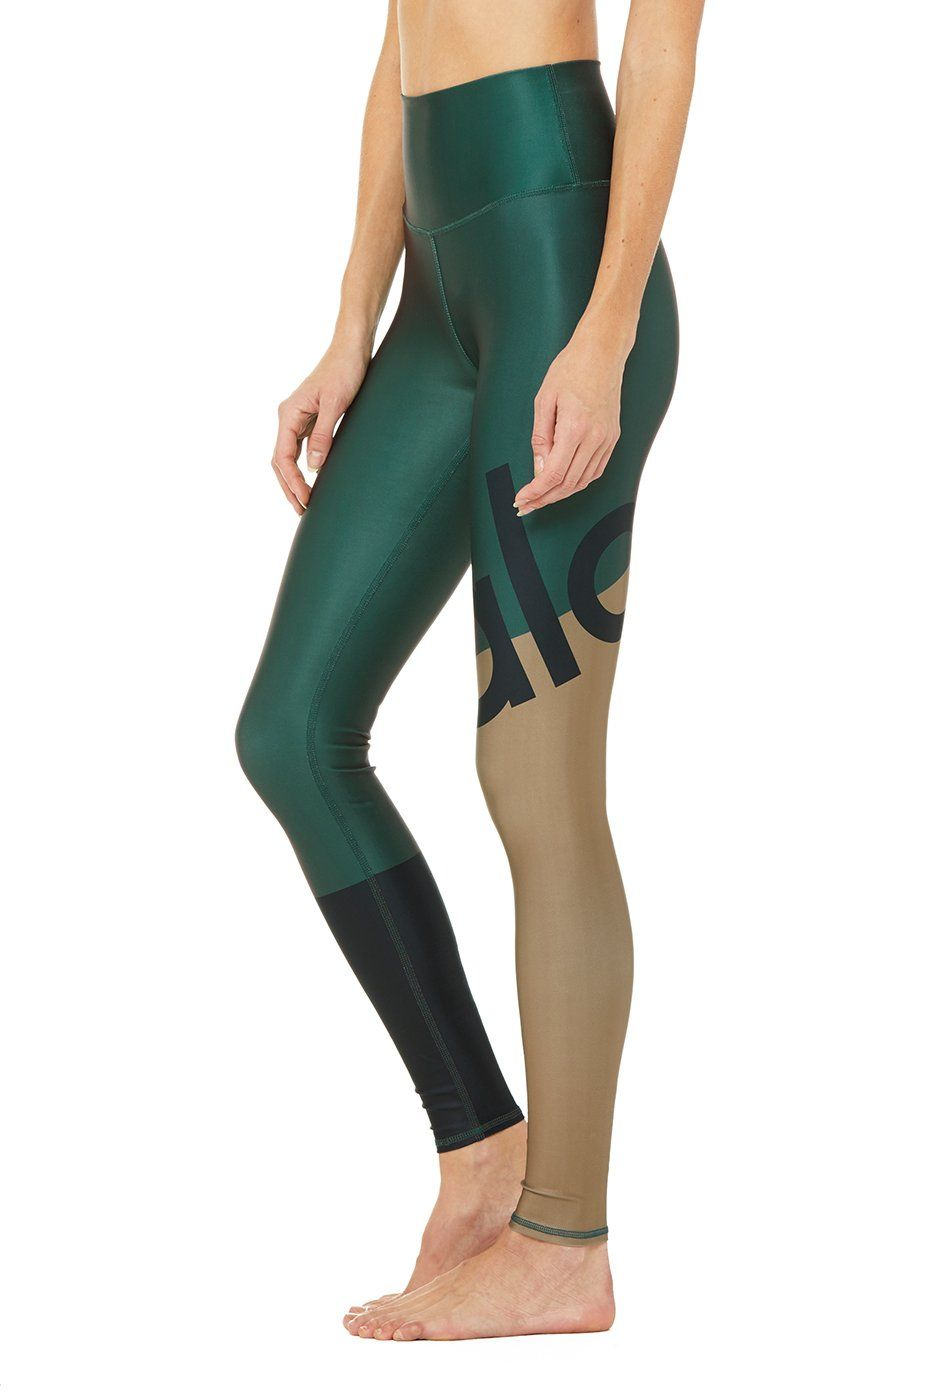 de4f0a17c5a063 High-Waist Airlift Legging - ALO Graphic in 2019 | Himmat.Life ...